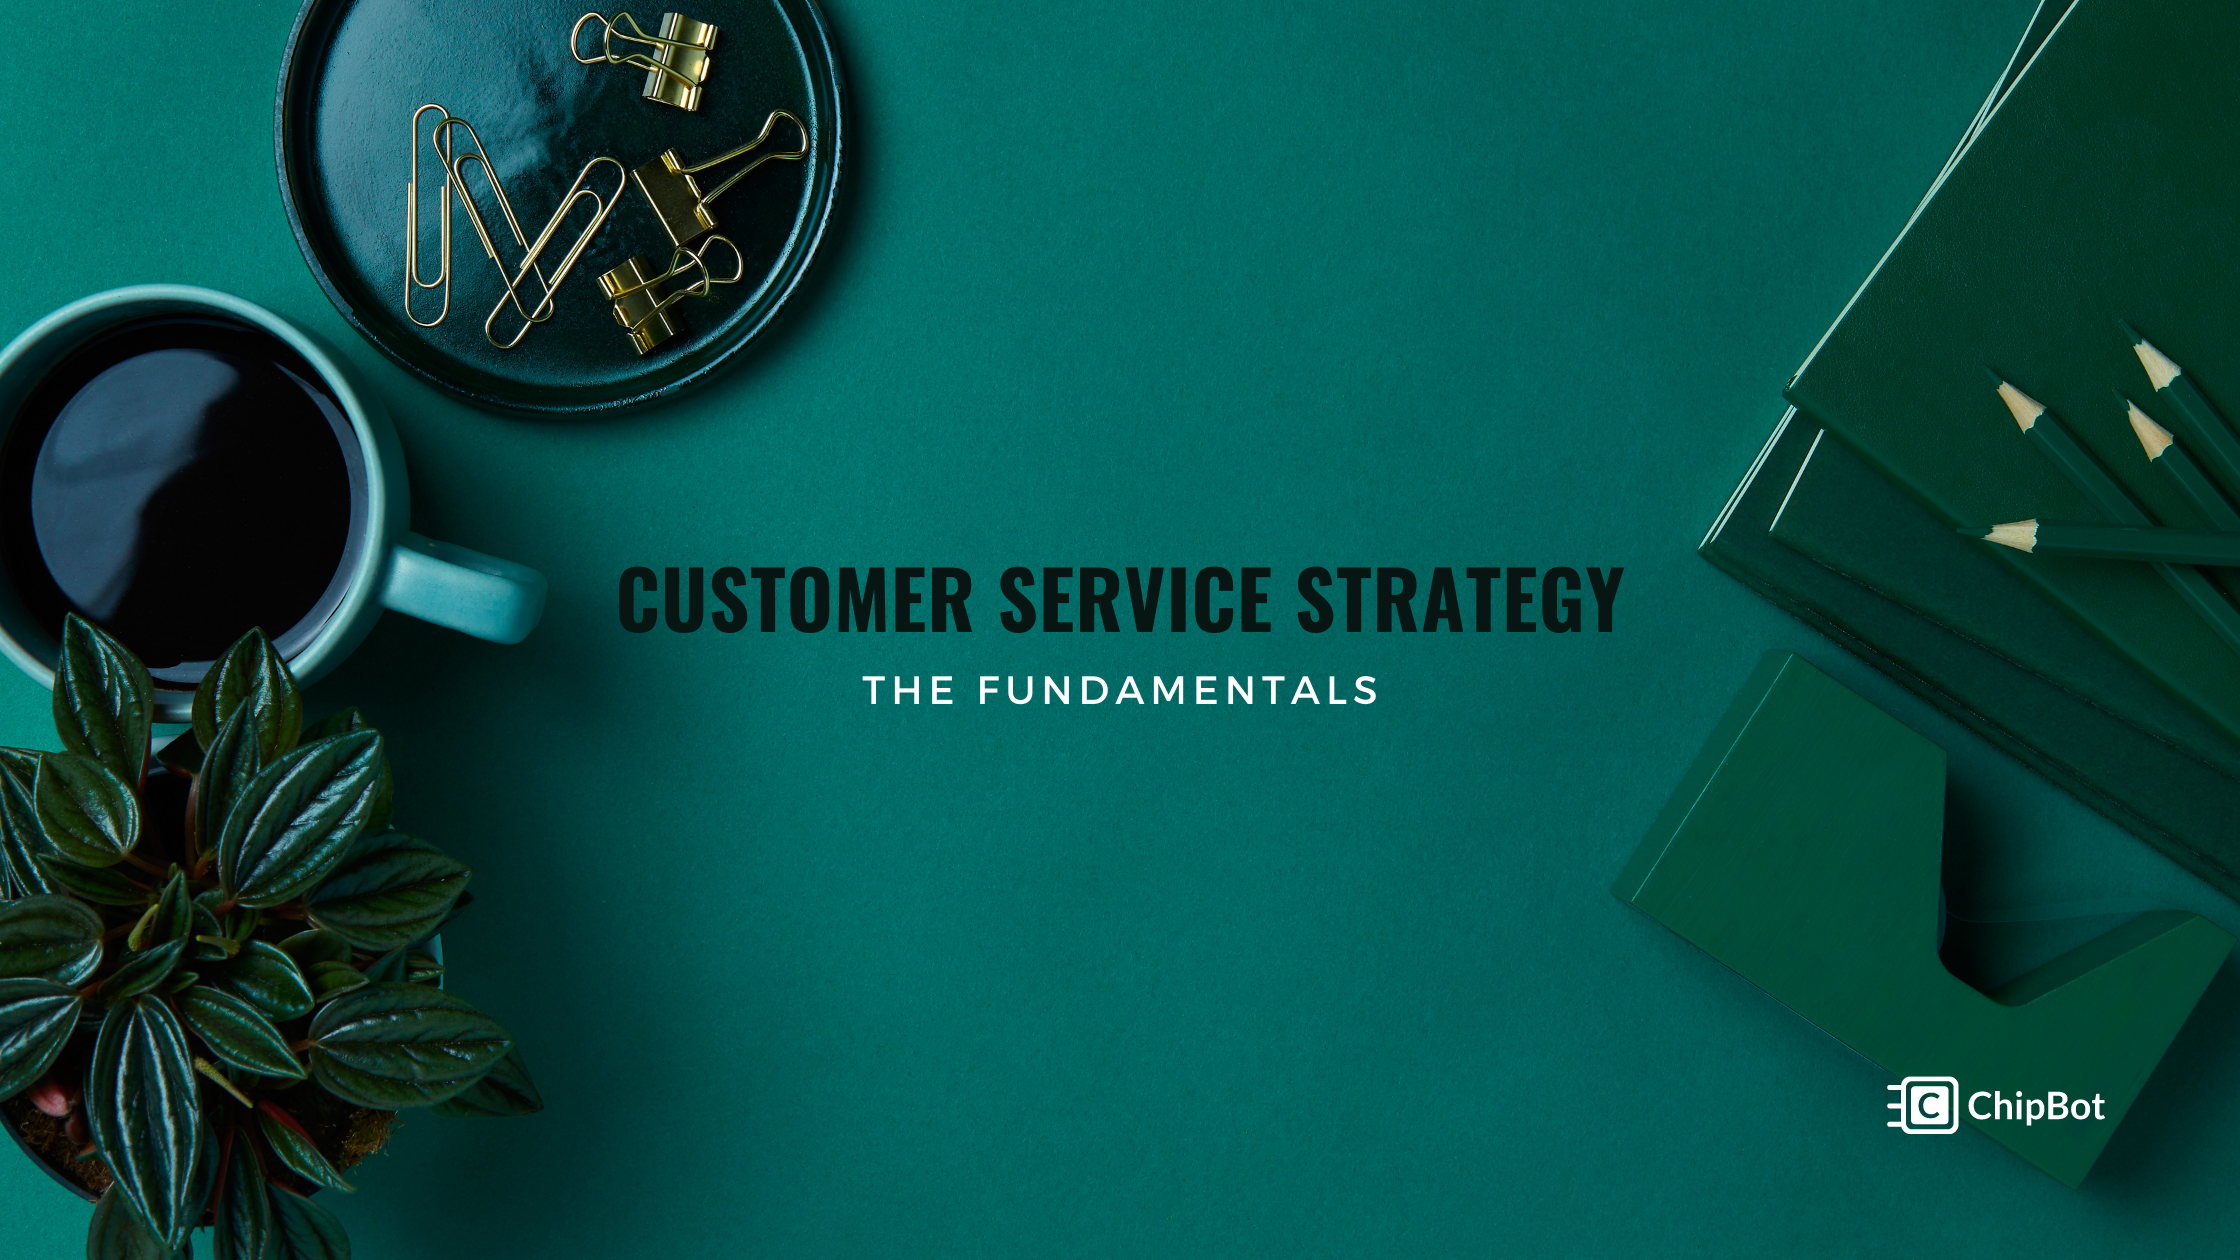 A Complete Guide to the Fundamentals of Customer Service Strategy